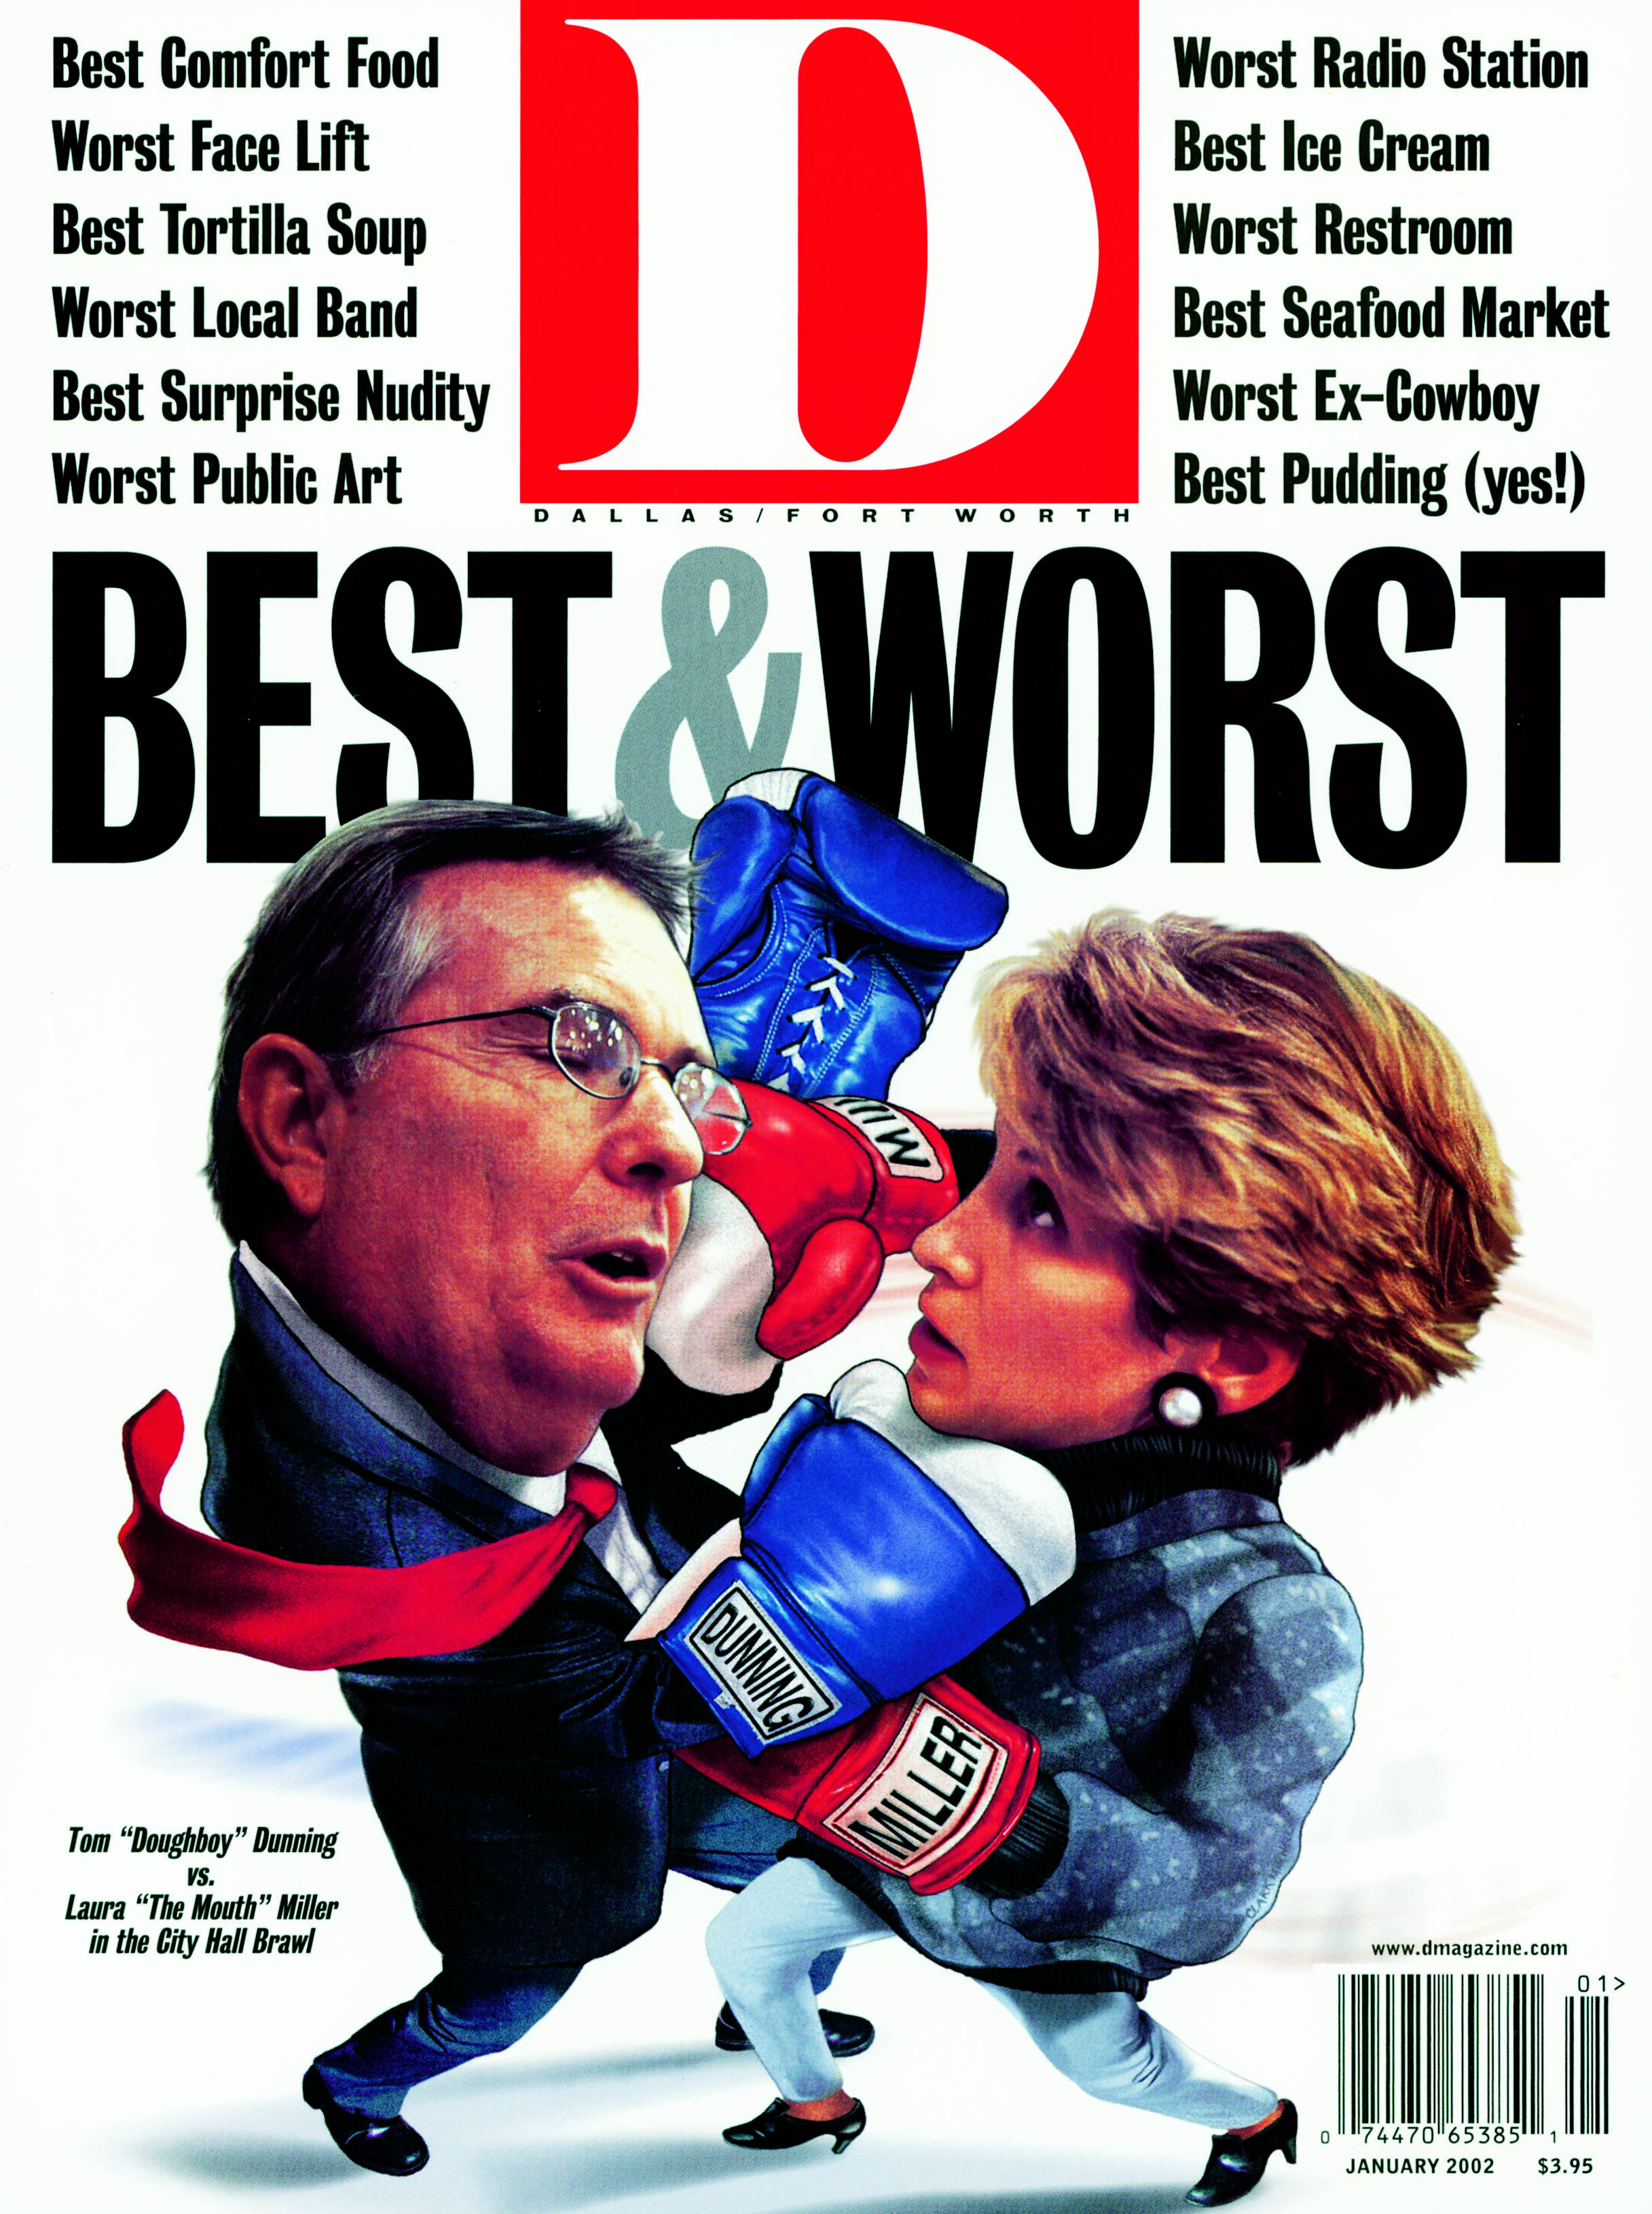 January 2002 cover